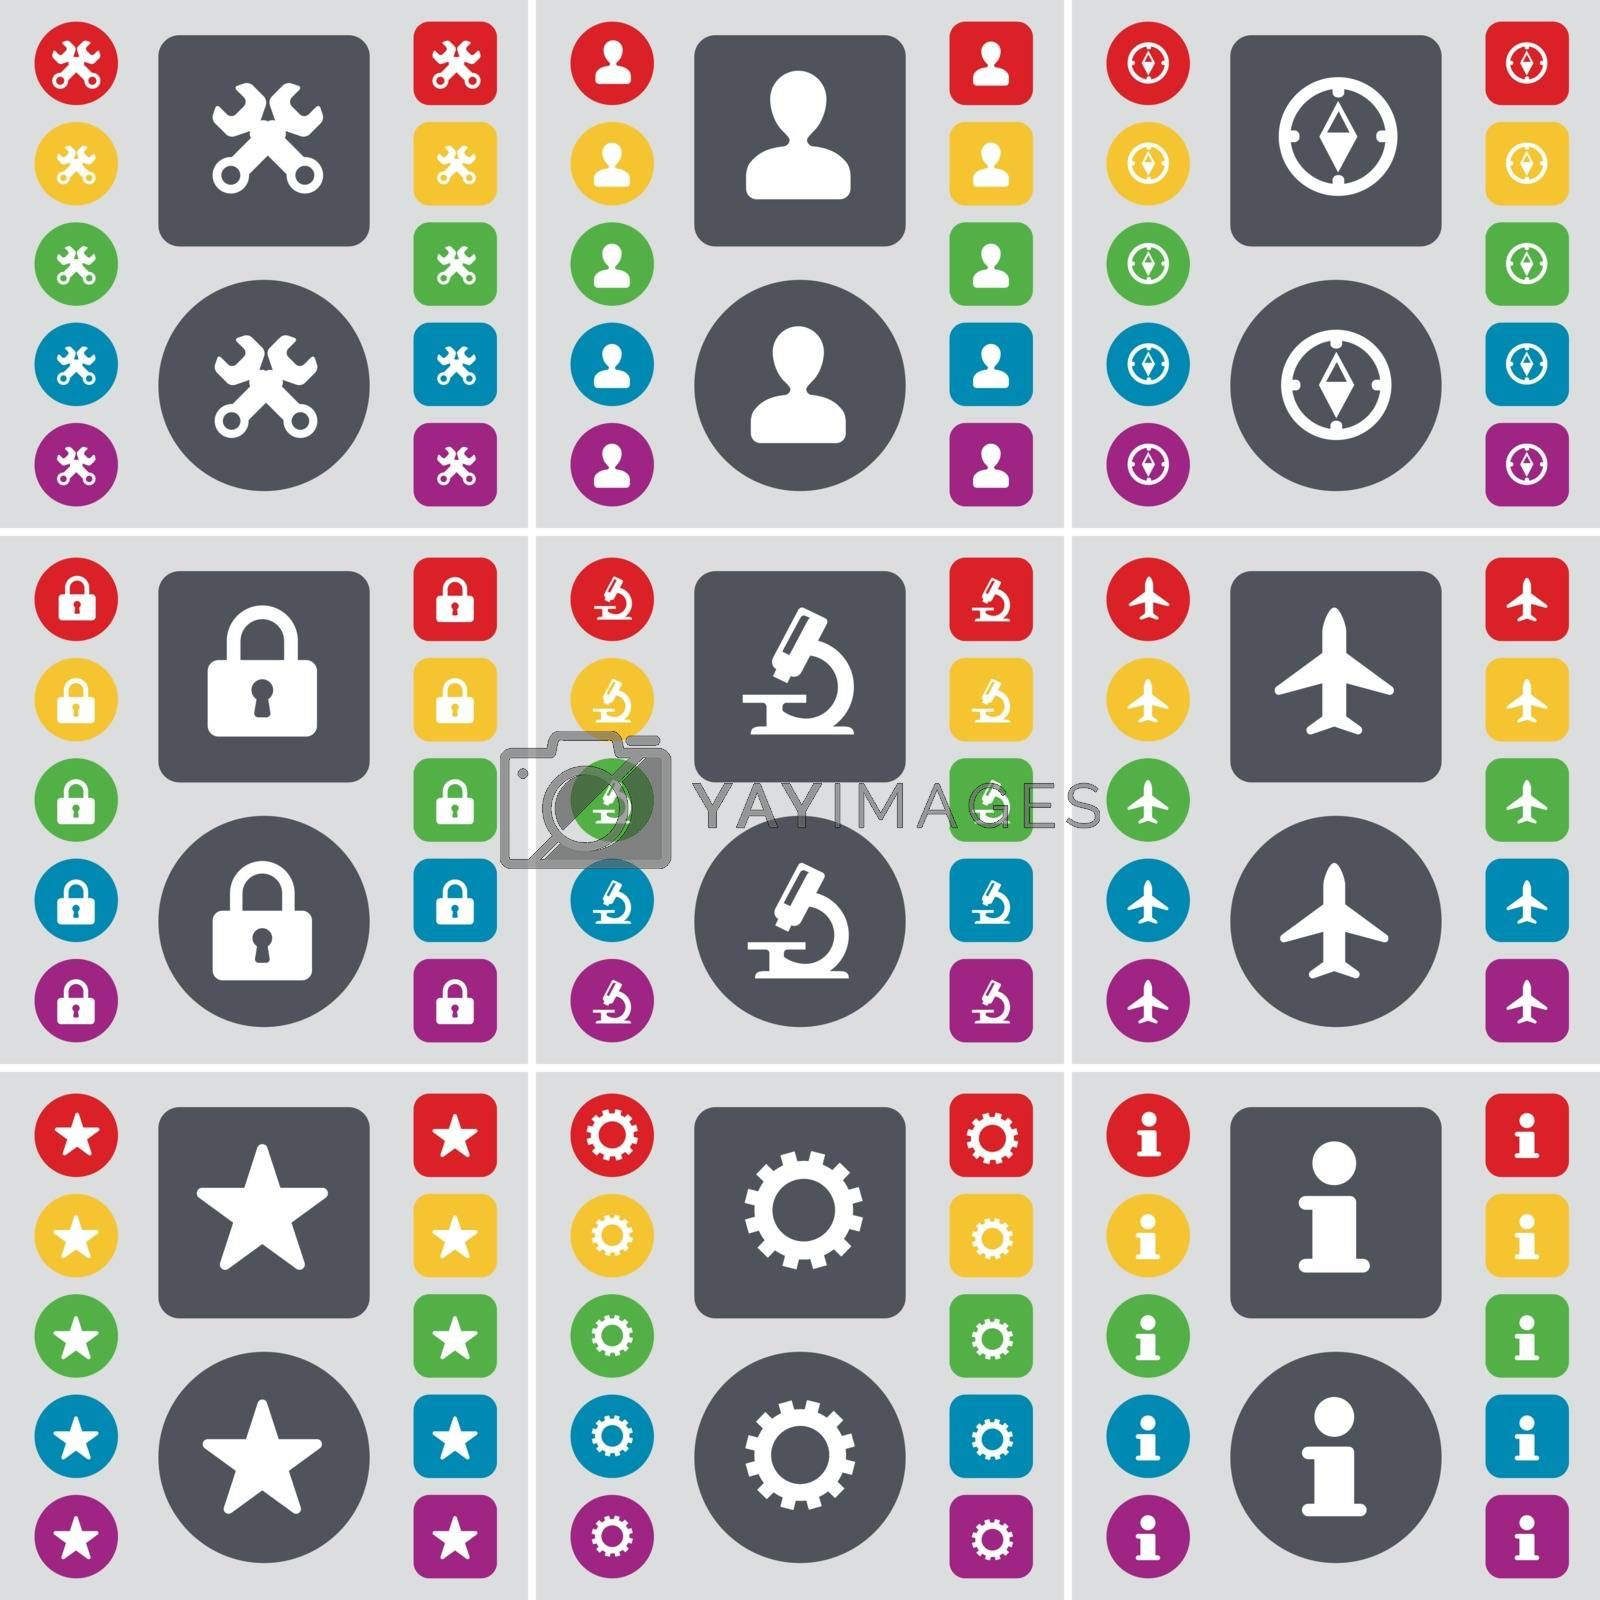 Royalty free image of Wrench, Avatar, Compass, Lock, Microscope, Airplane, Star, Gear, Information icon symbol. A large set of flat, colored buttons for your design. Vector by serhii_lohvyniuk